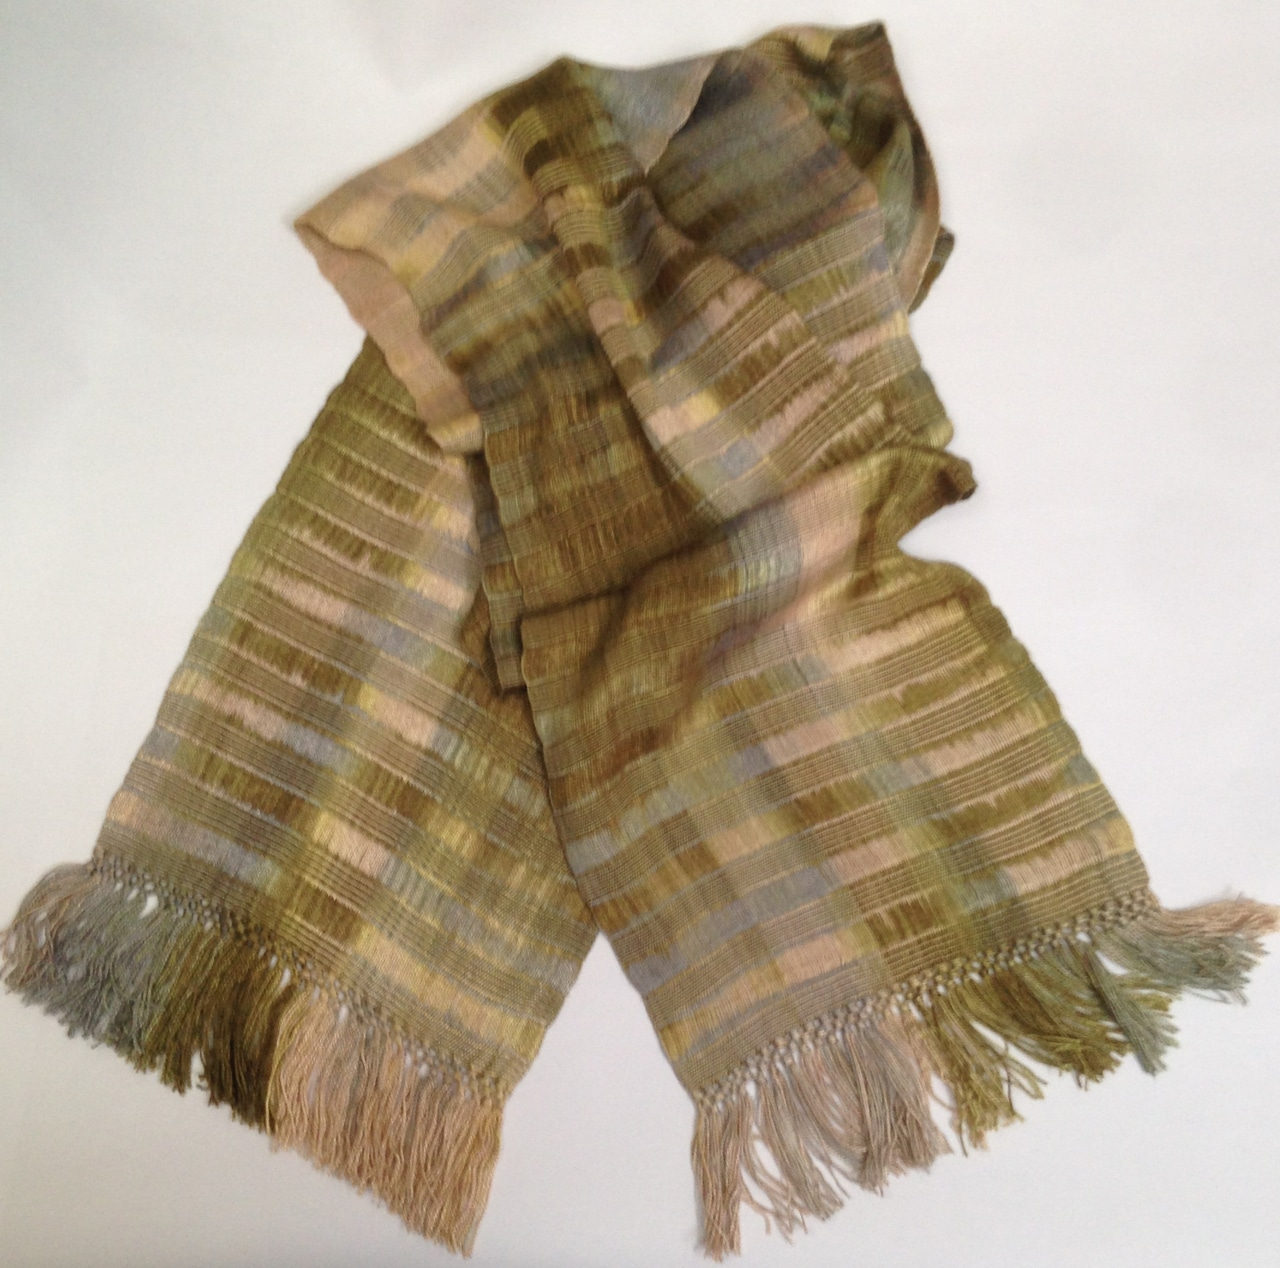 Beige Olive -  Lightweight Bamboo Handwoven Scarf, Open Weave, 8